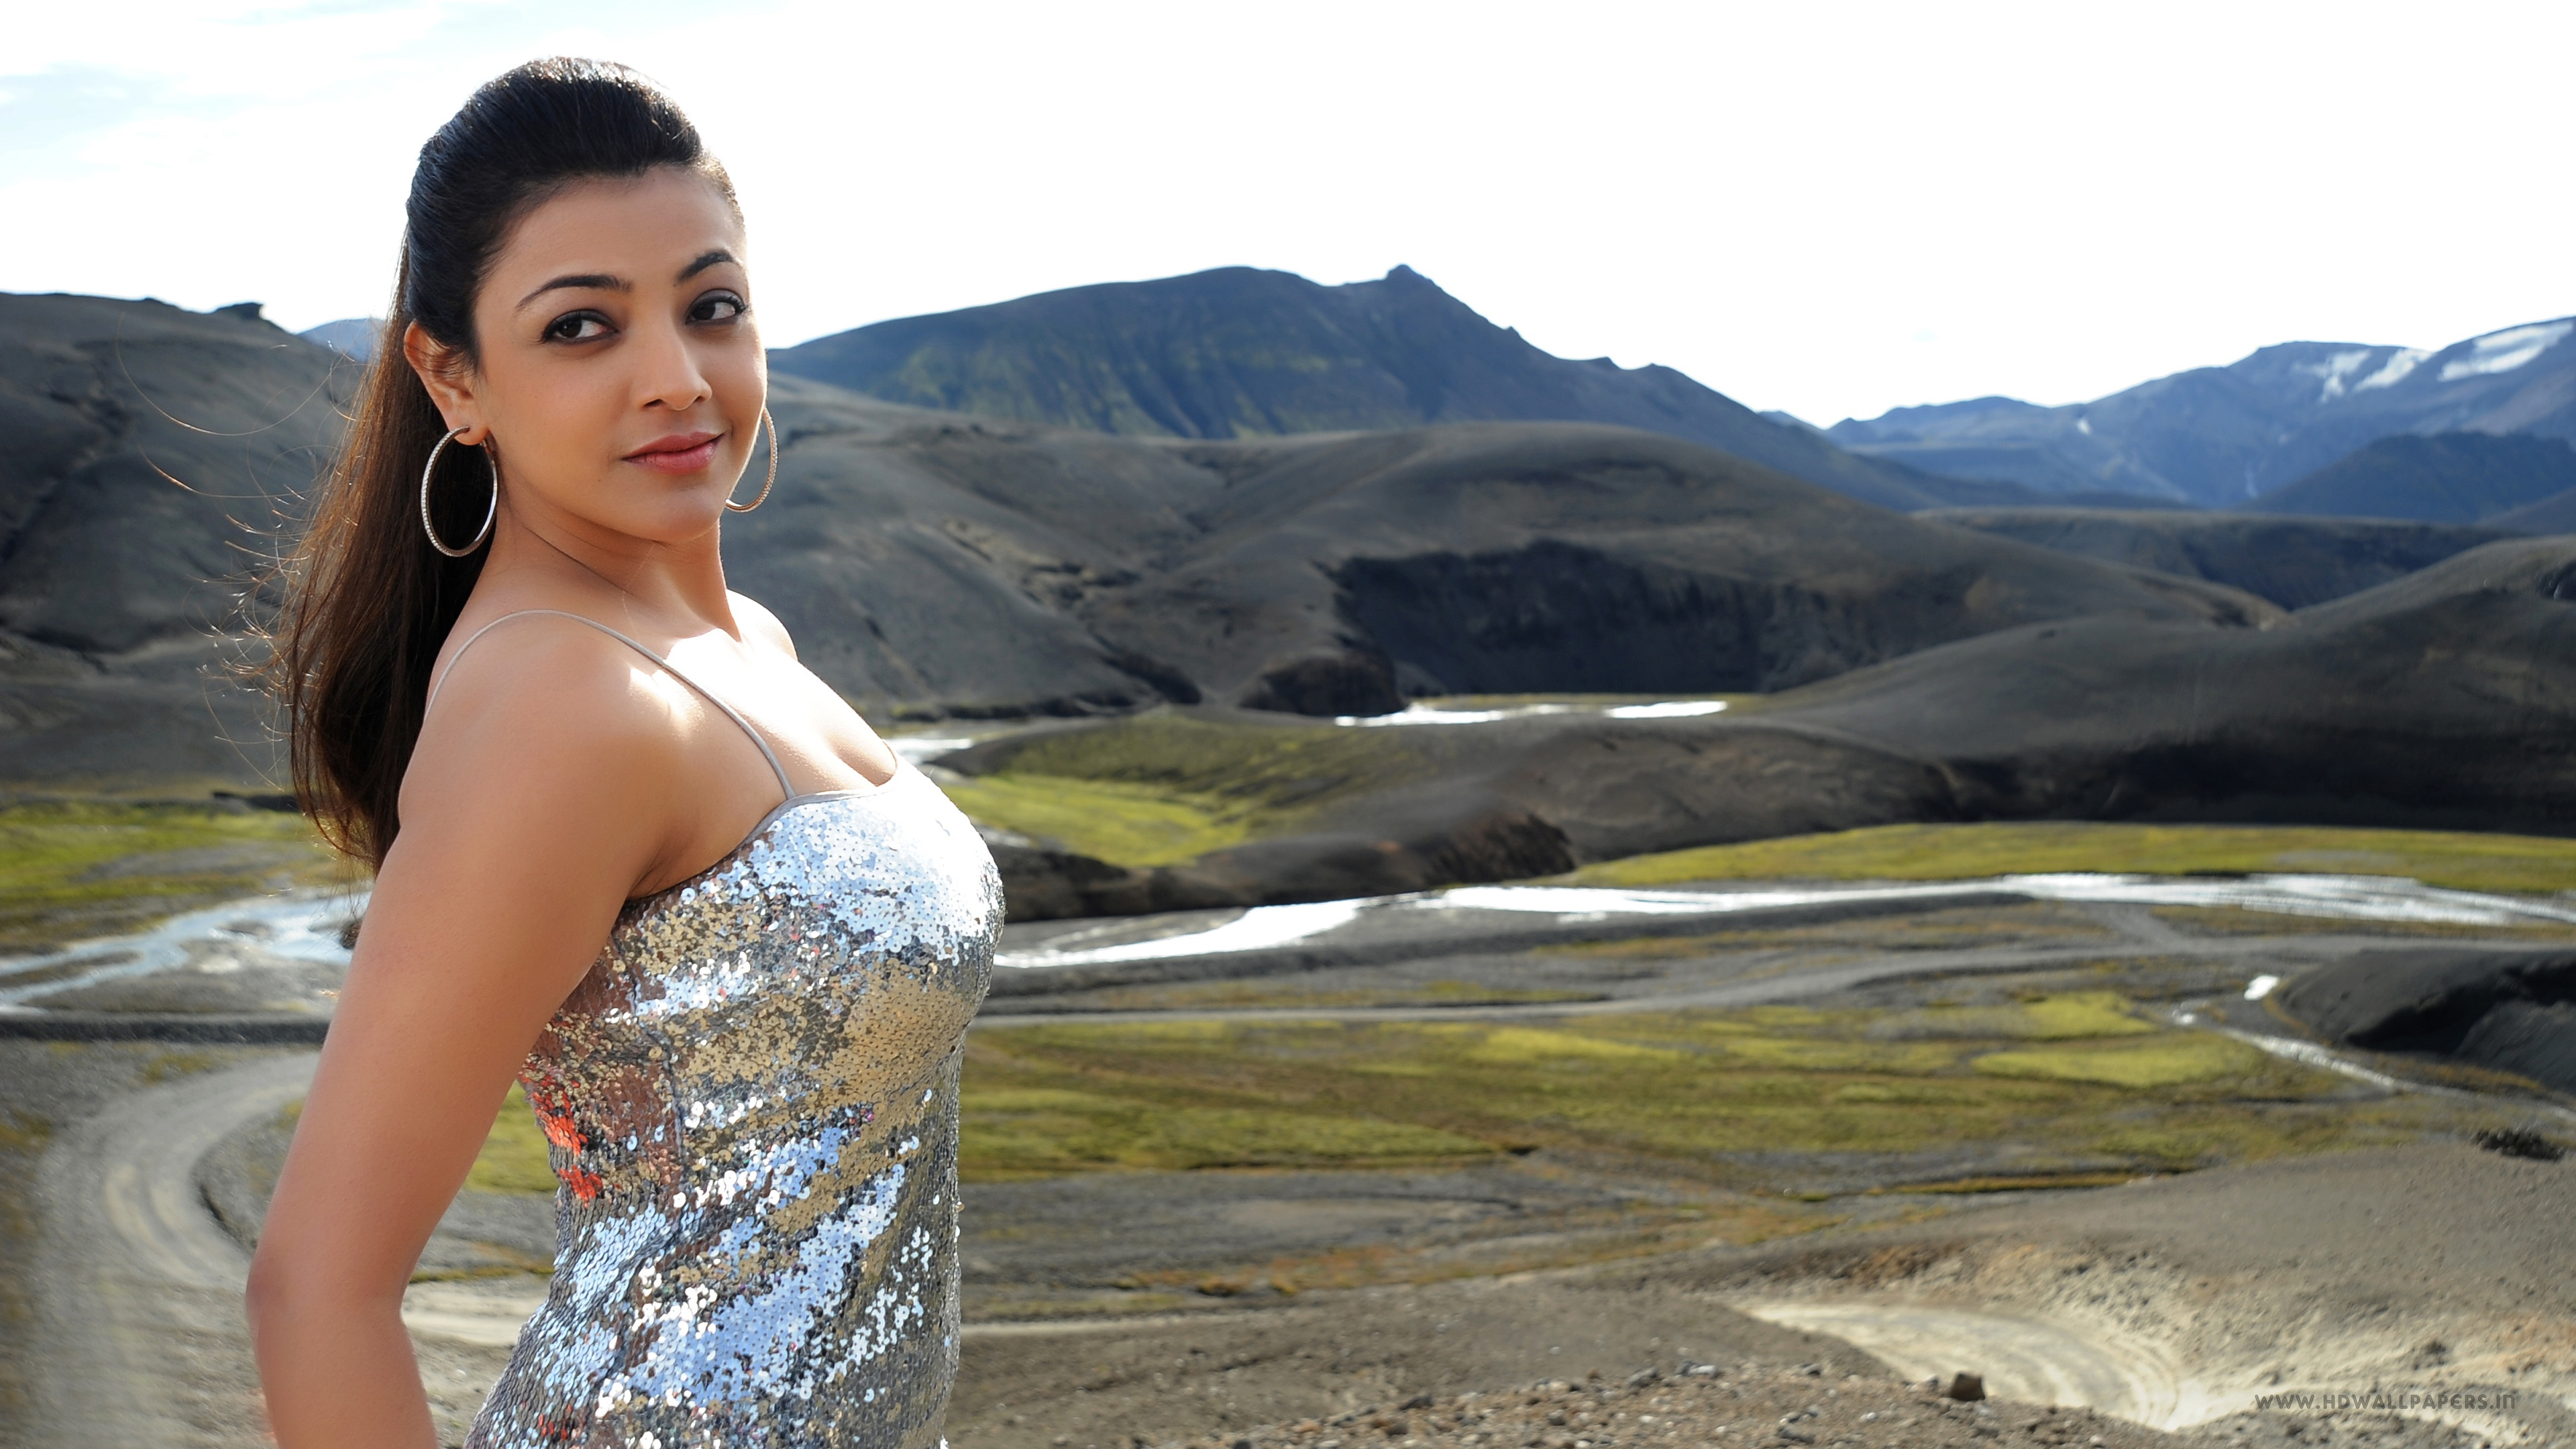 kajal agarwal hot wallpapers in jpg format for free download